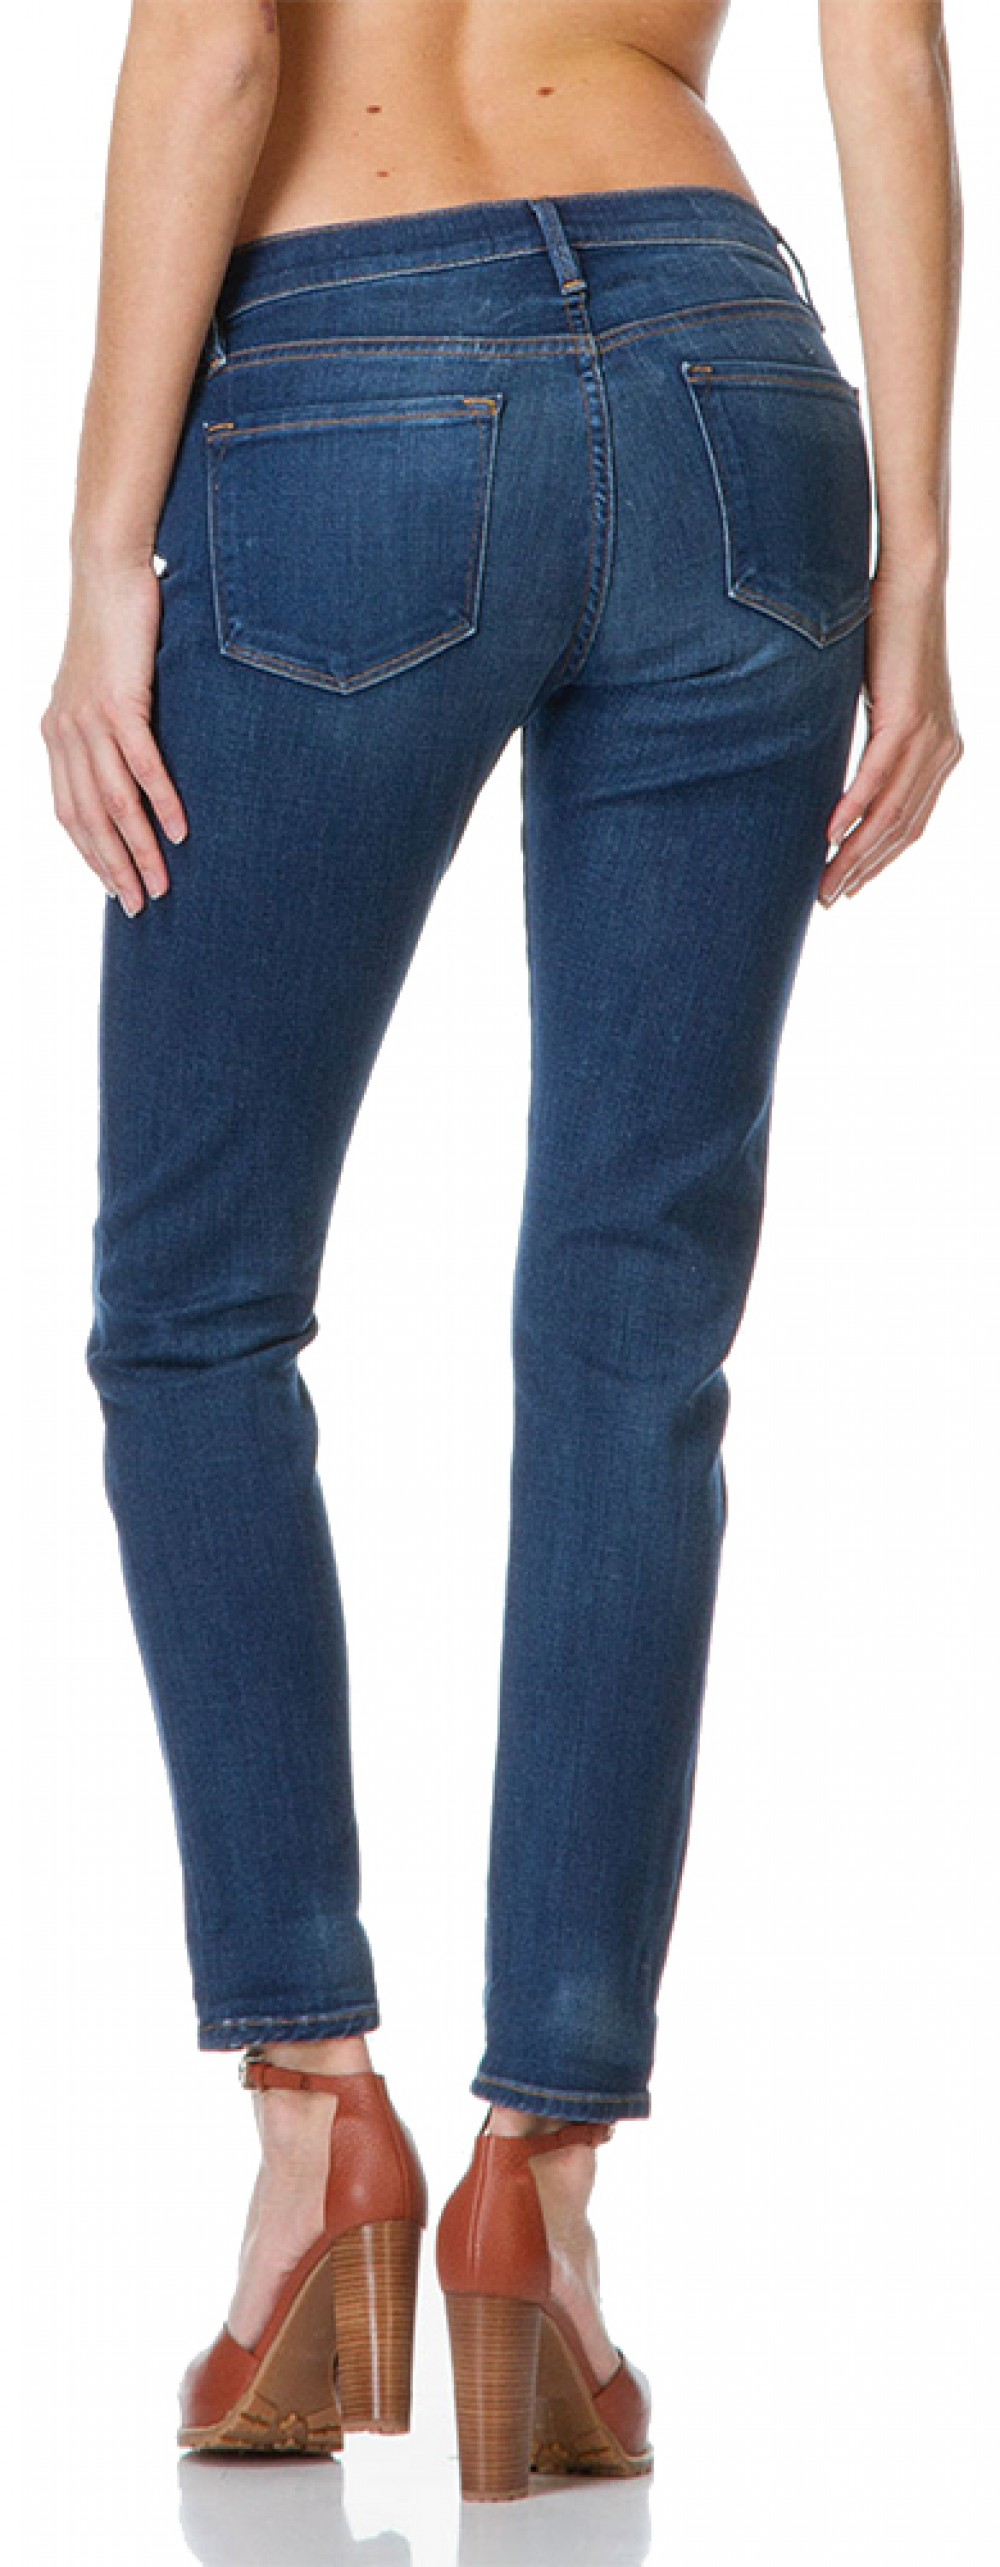 Engaging Slouchy Slim Jeans Designs | Stunning Frame Denim Le Garcon